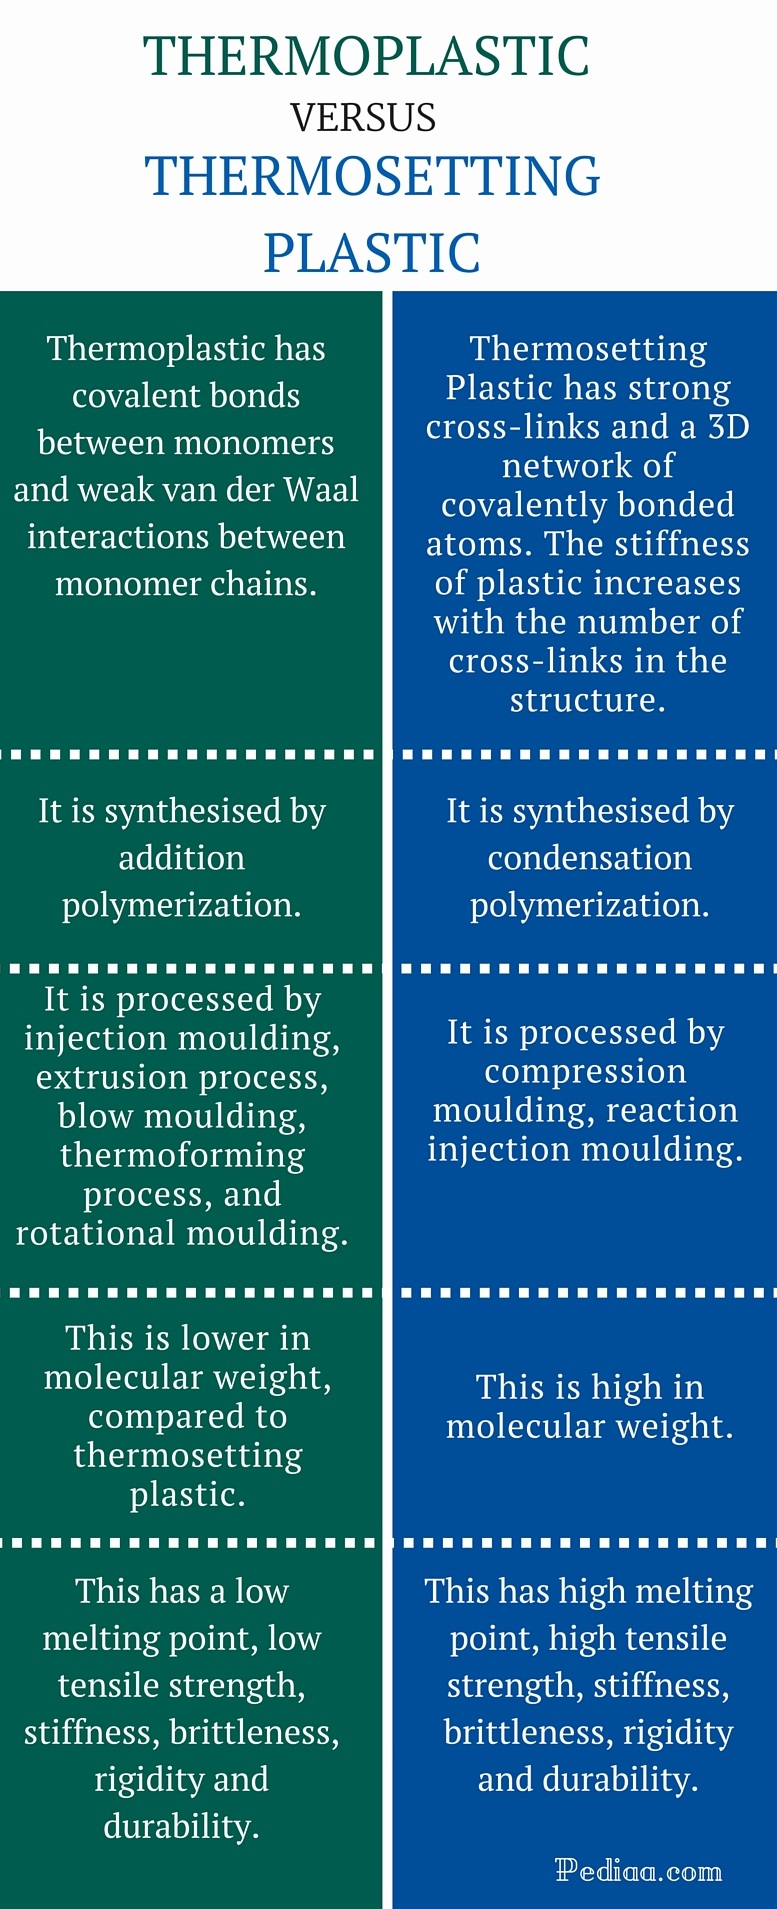 Difference Between Thermoplastic and Thermosetting Plastic - infographic